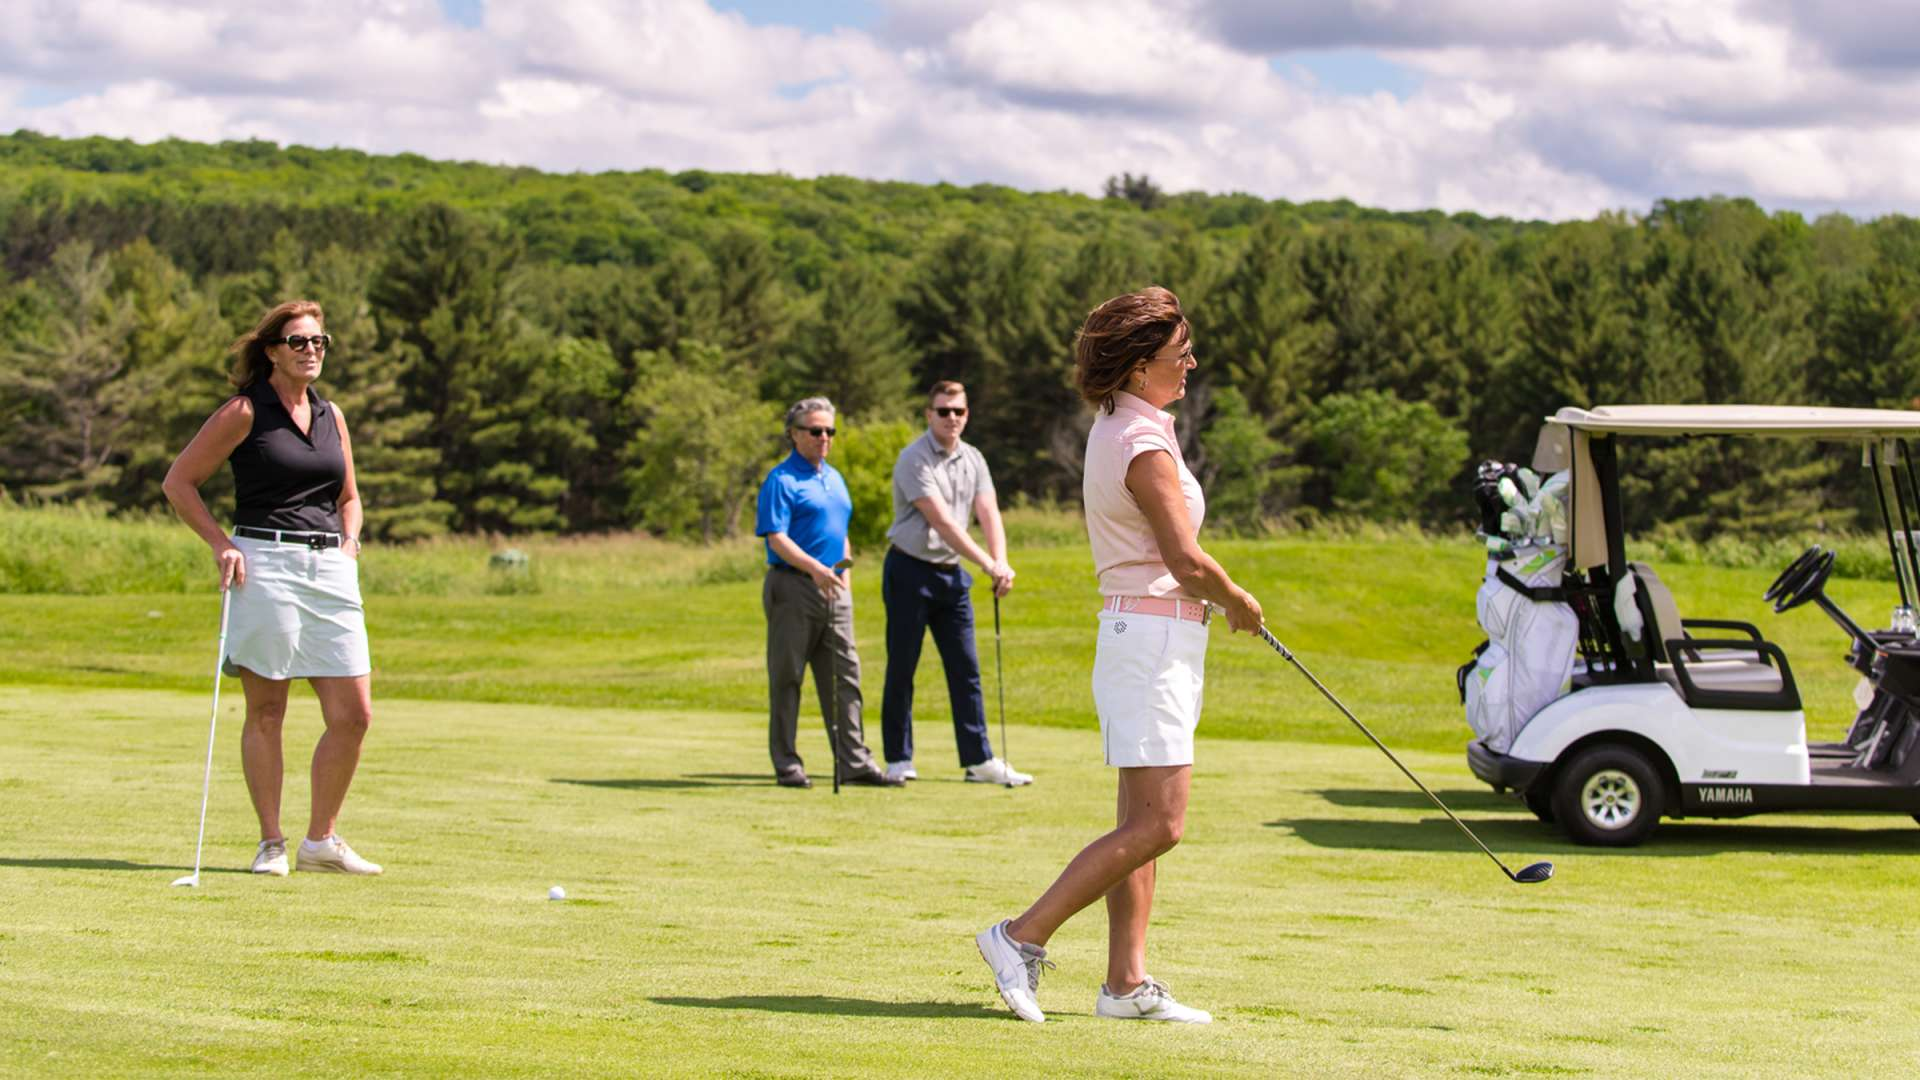 Golf Tournaments at Deerhurst Resort